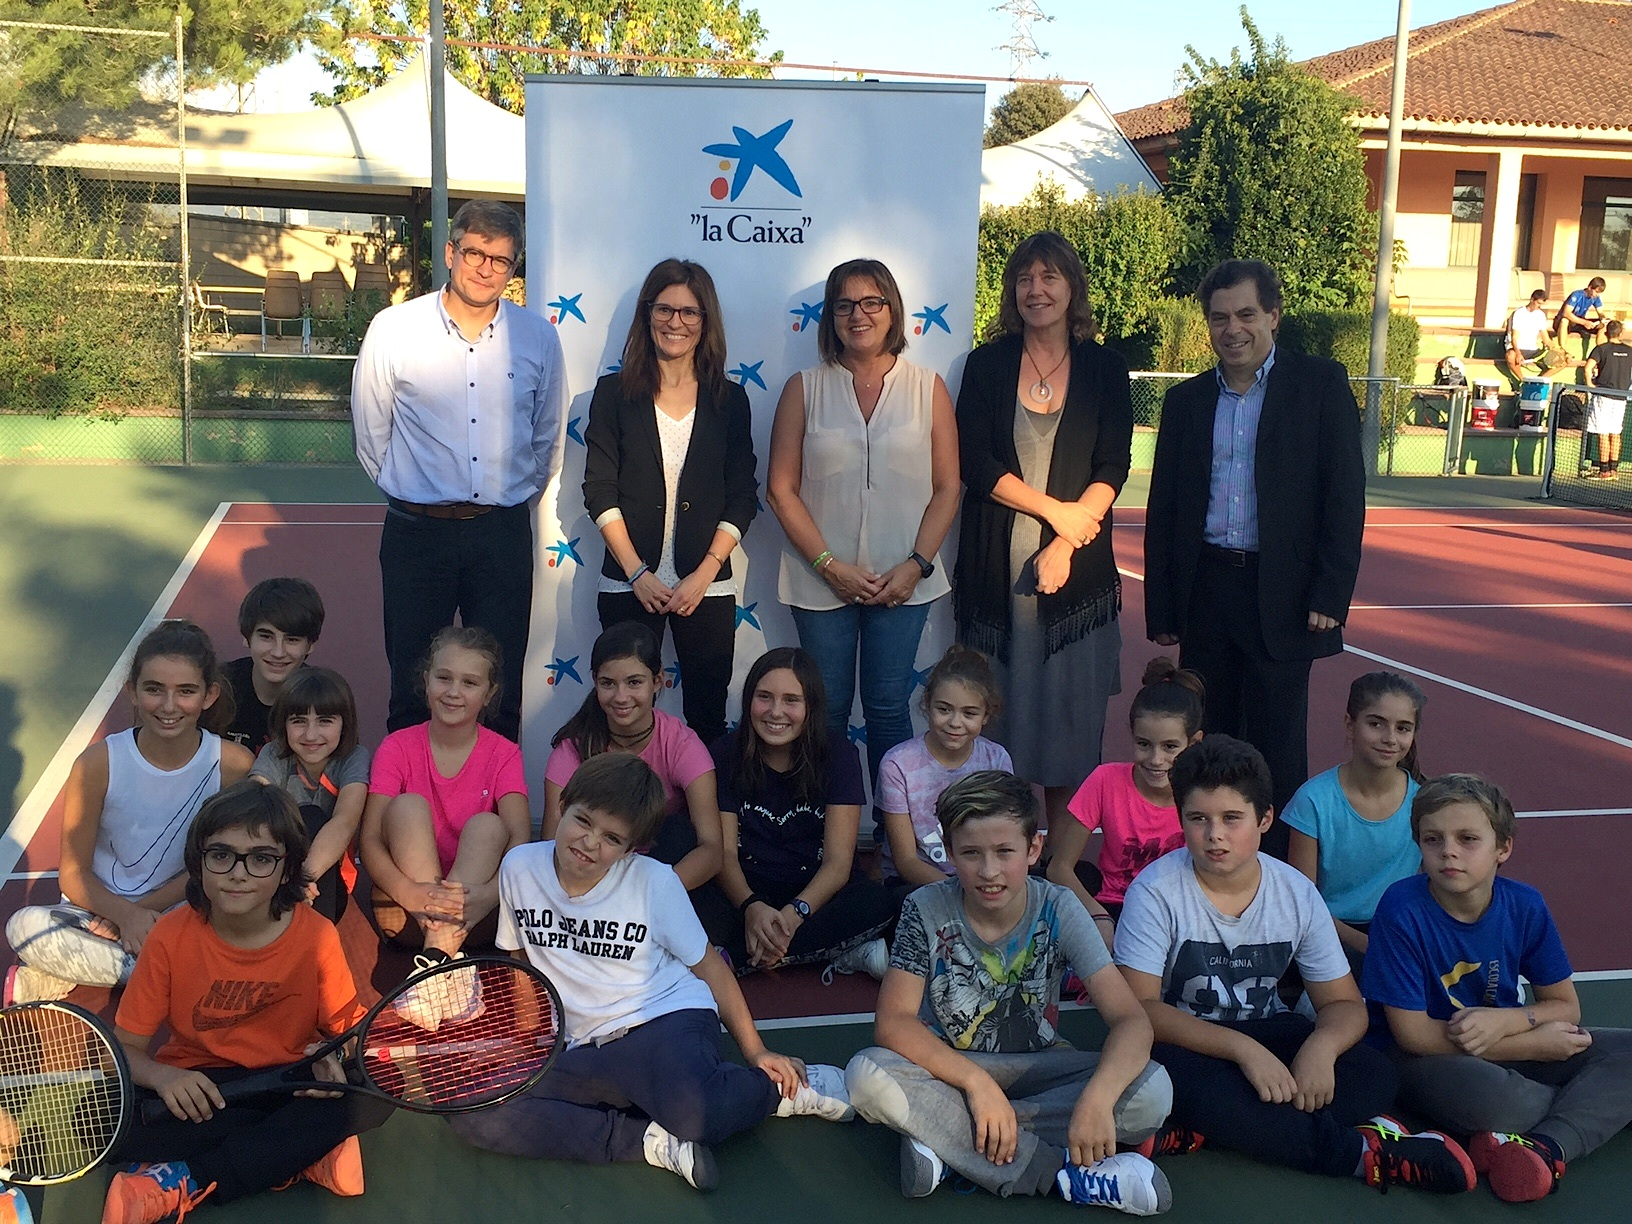 Representants del club, de La Caixa i inscrits a l'escola de tennis